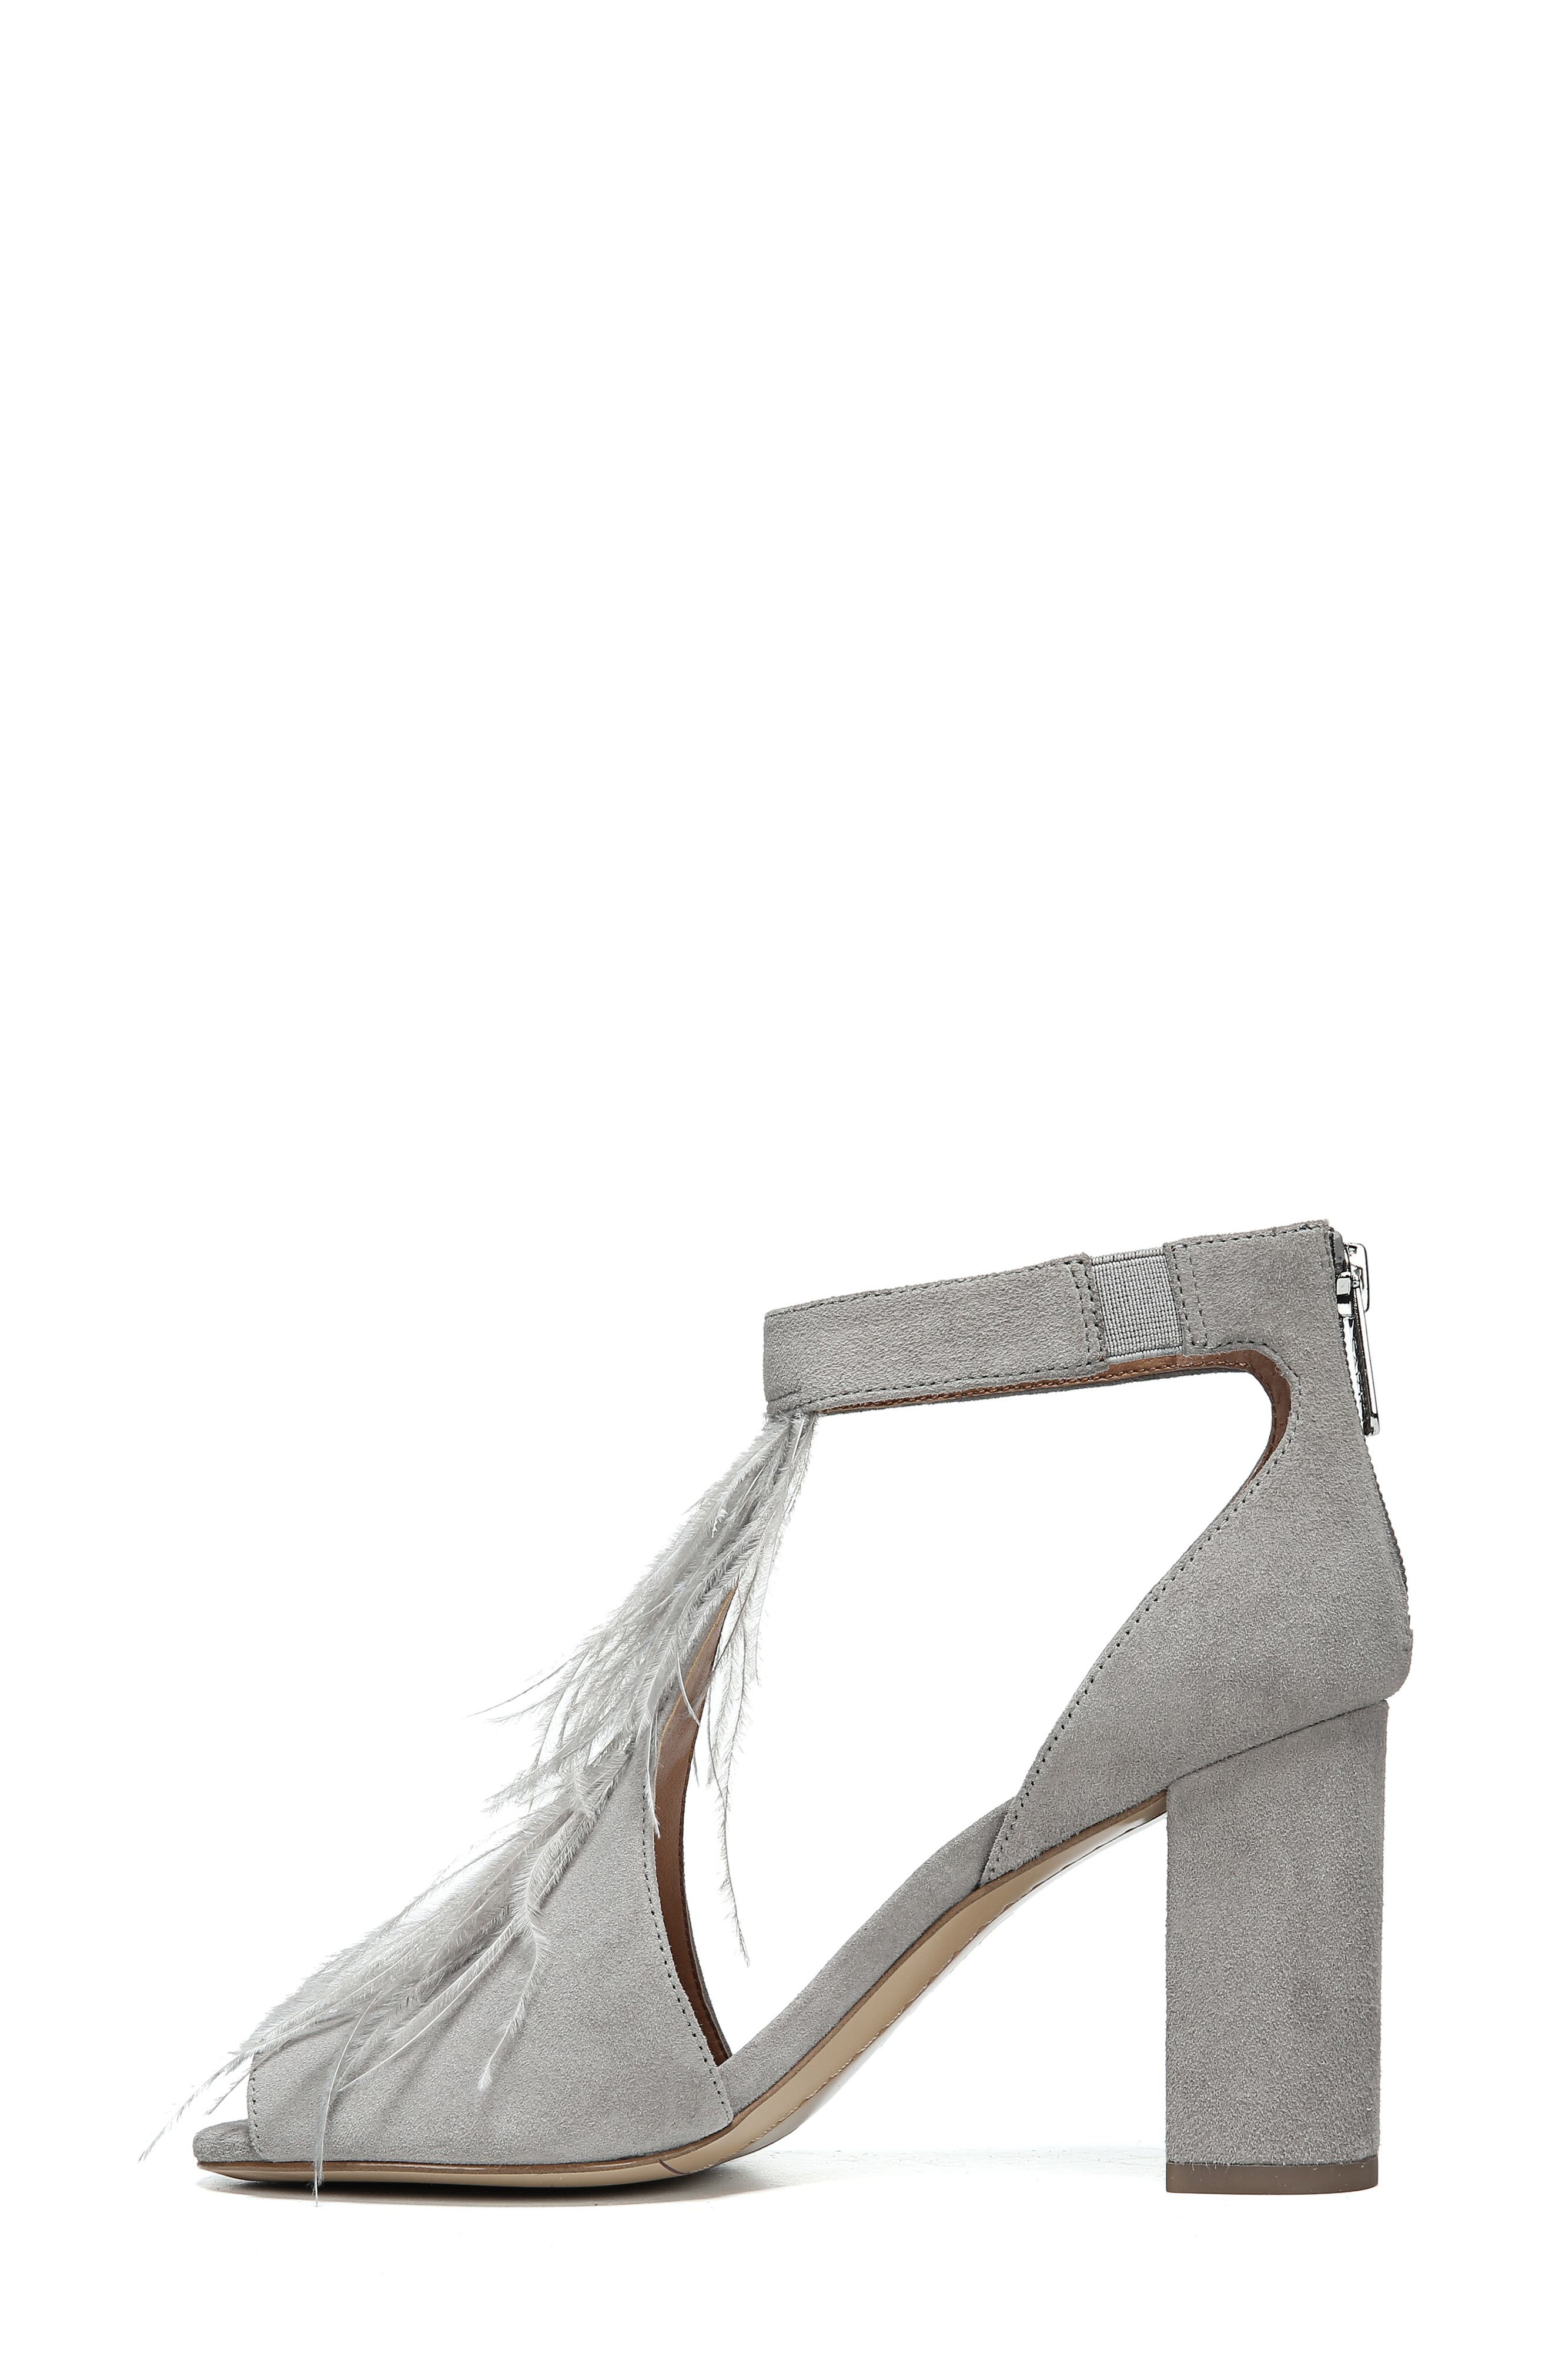 SARTO BY FRANCO SARTO, Olivette Sandal, Alternate thumbnail 8, color, GREYSTONE LEATHER